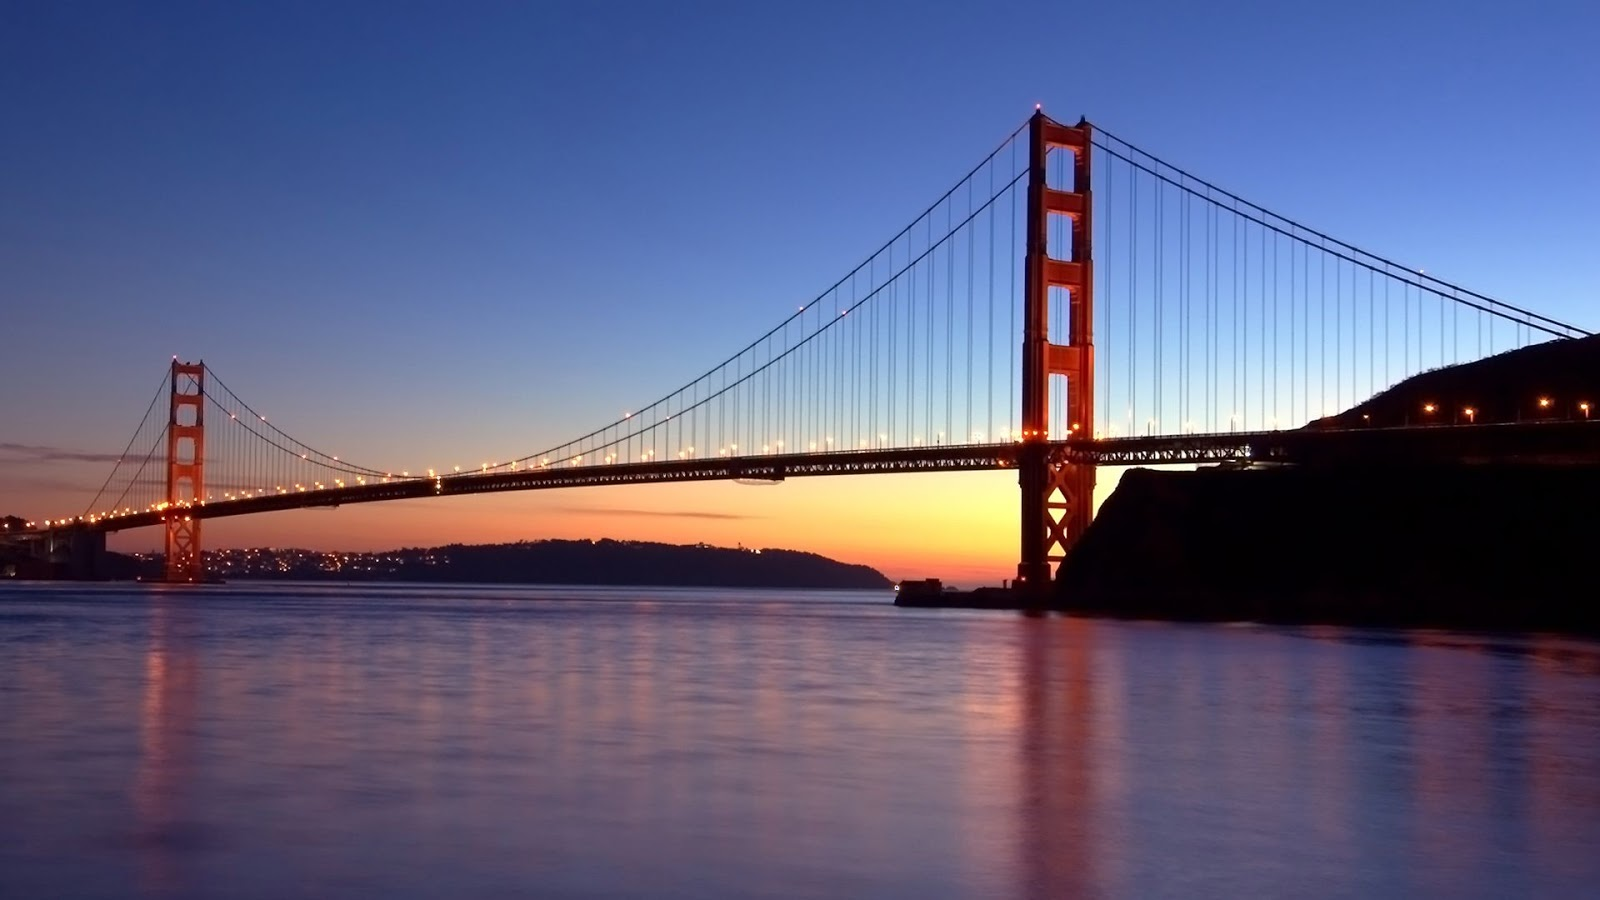 Where is cookie golden gate bridge san francisco star always san franciscos golden gate bridge is known worldwide for its dramatic bridge towersnce 1941 it has been featured in a wide range of movies from sciox Images